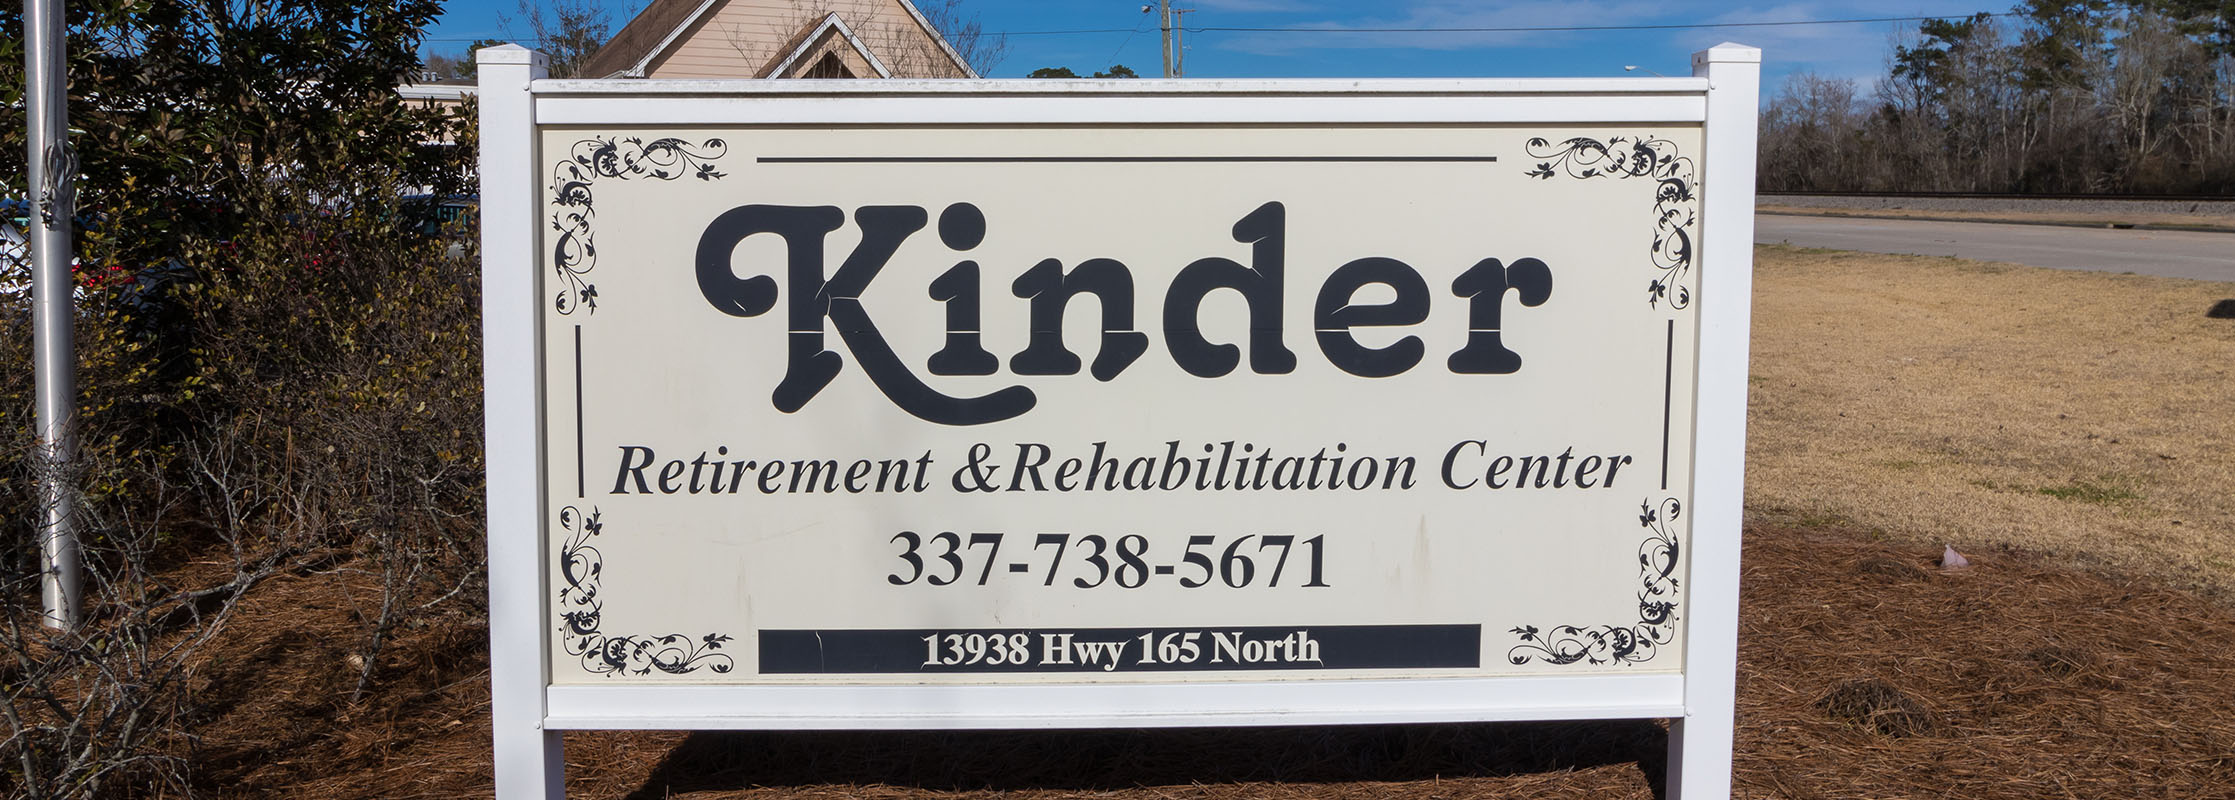 KINDER SIGN CROPPED RESIZED